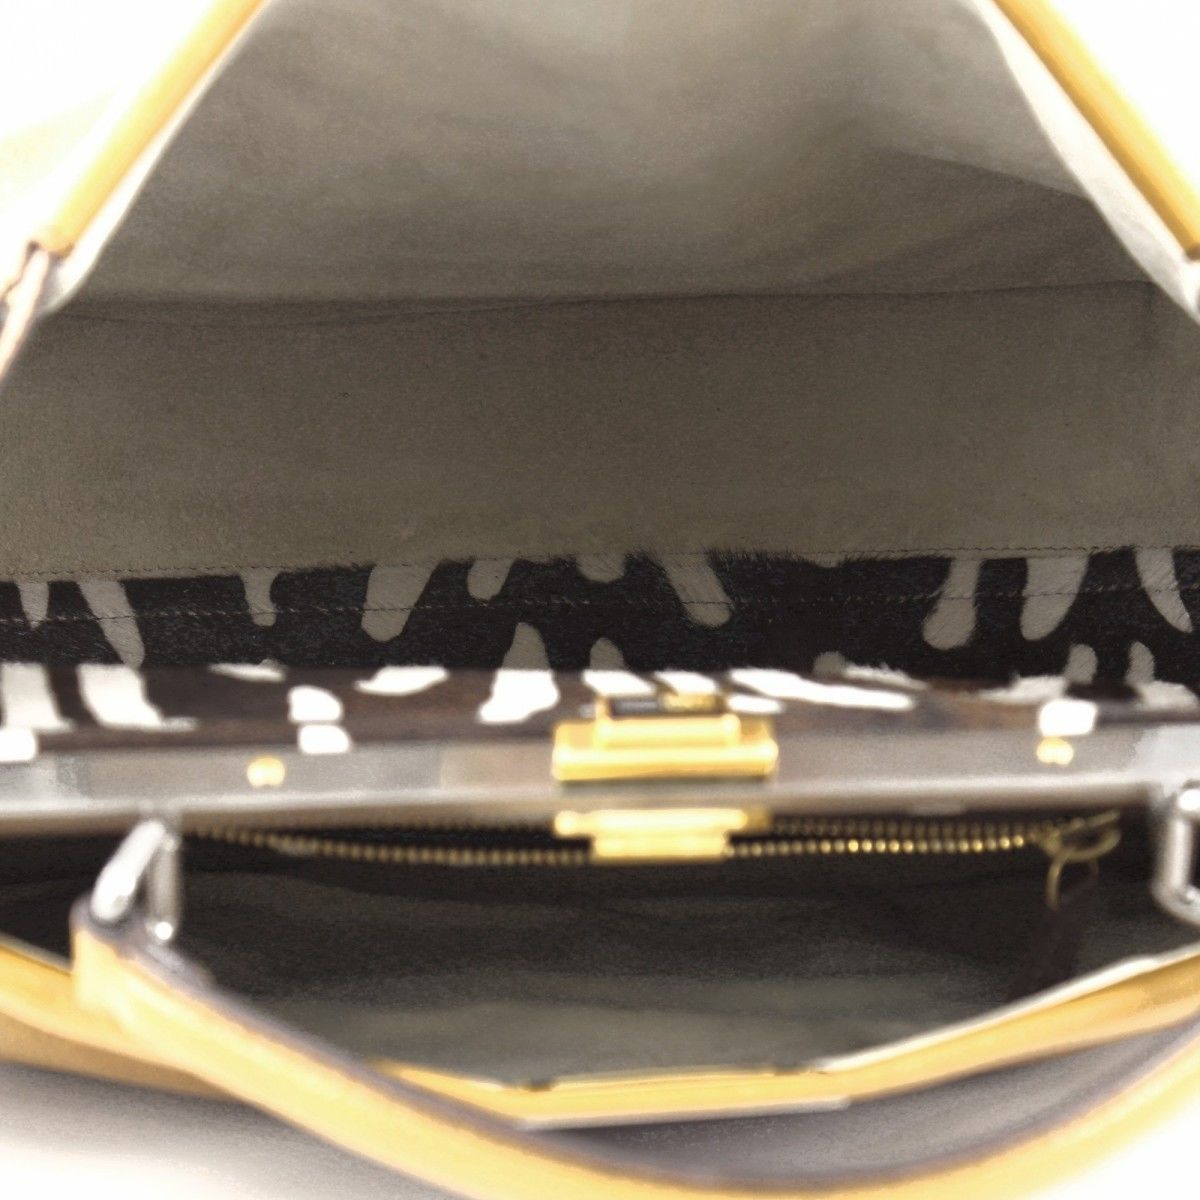 98eeafbc Peekaboo Handbag Leather with Calf Hair Interior Large